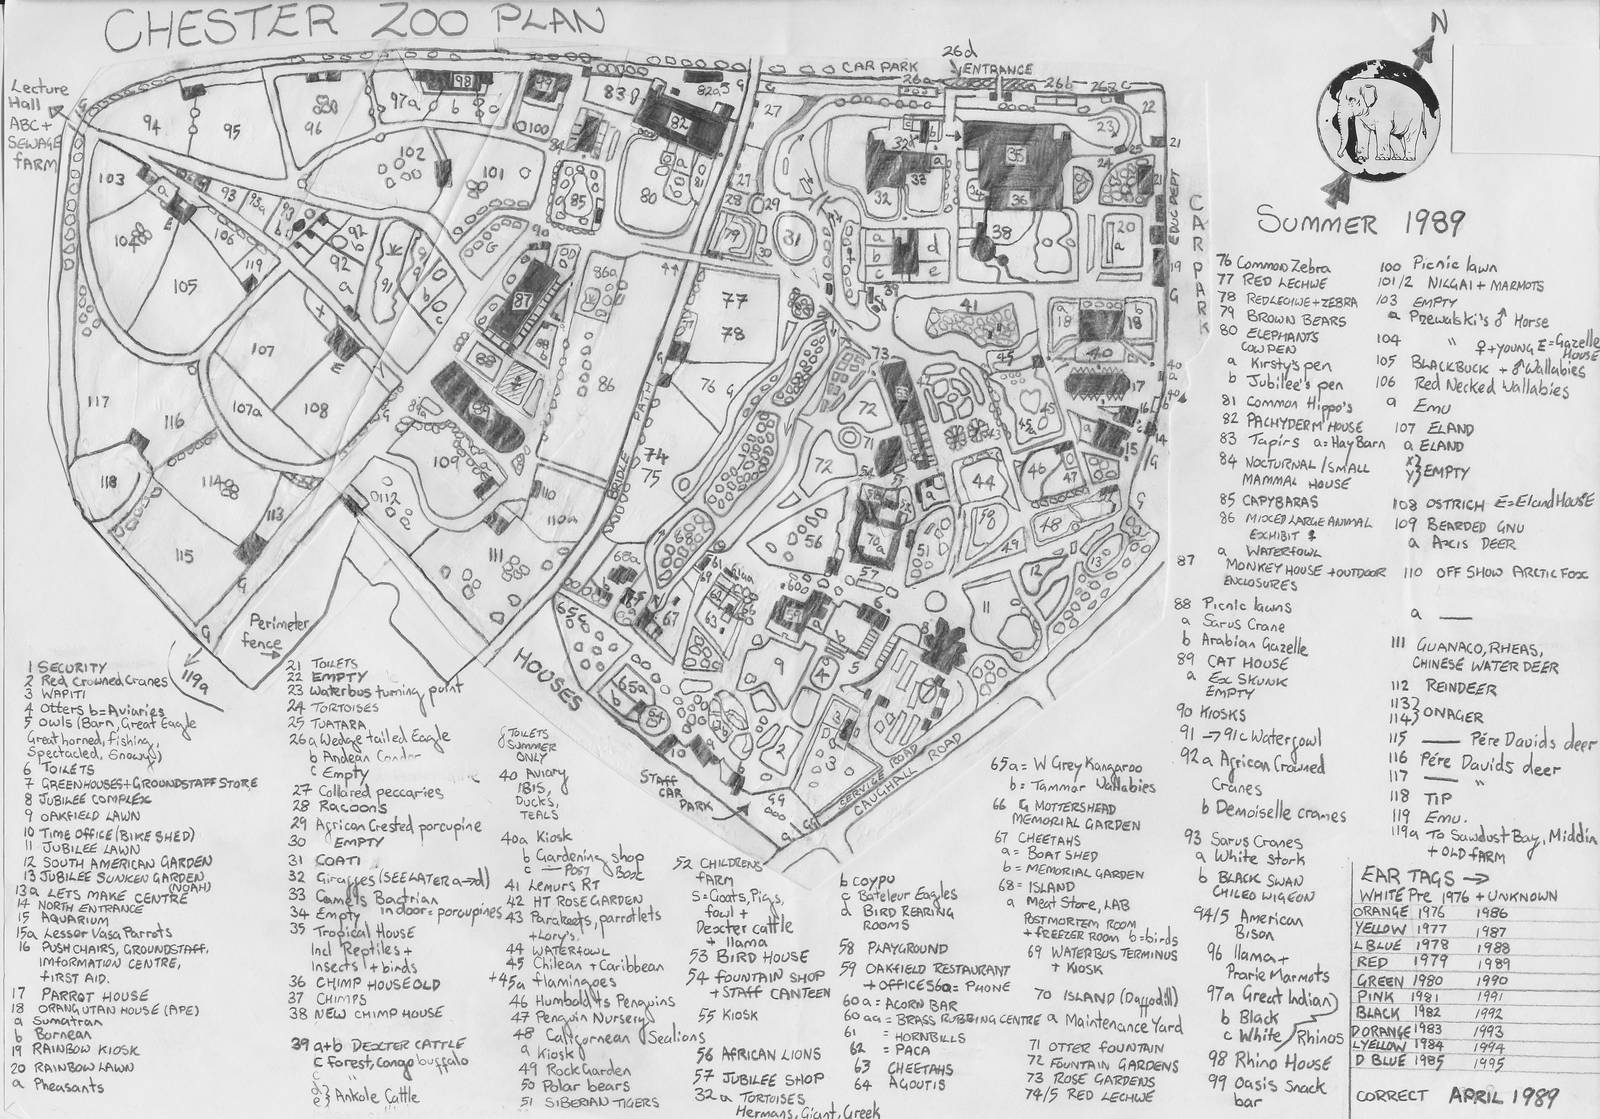 Chester Zoo Map April 1989